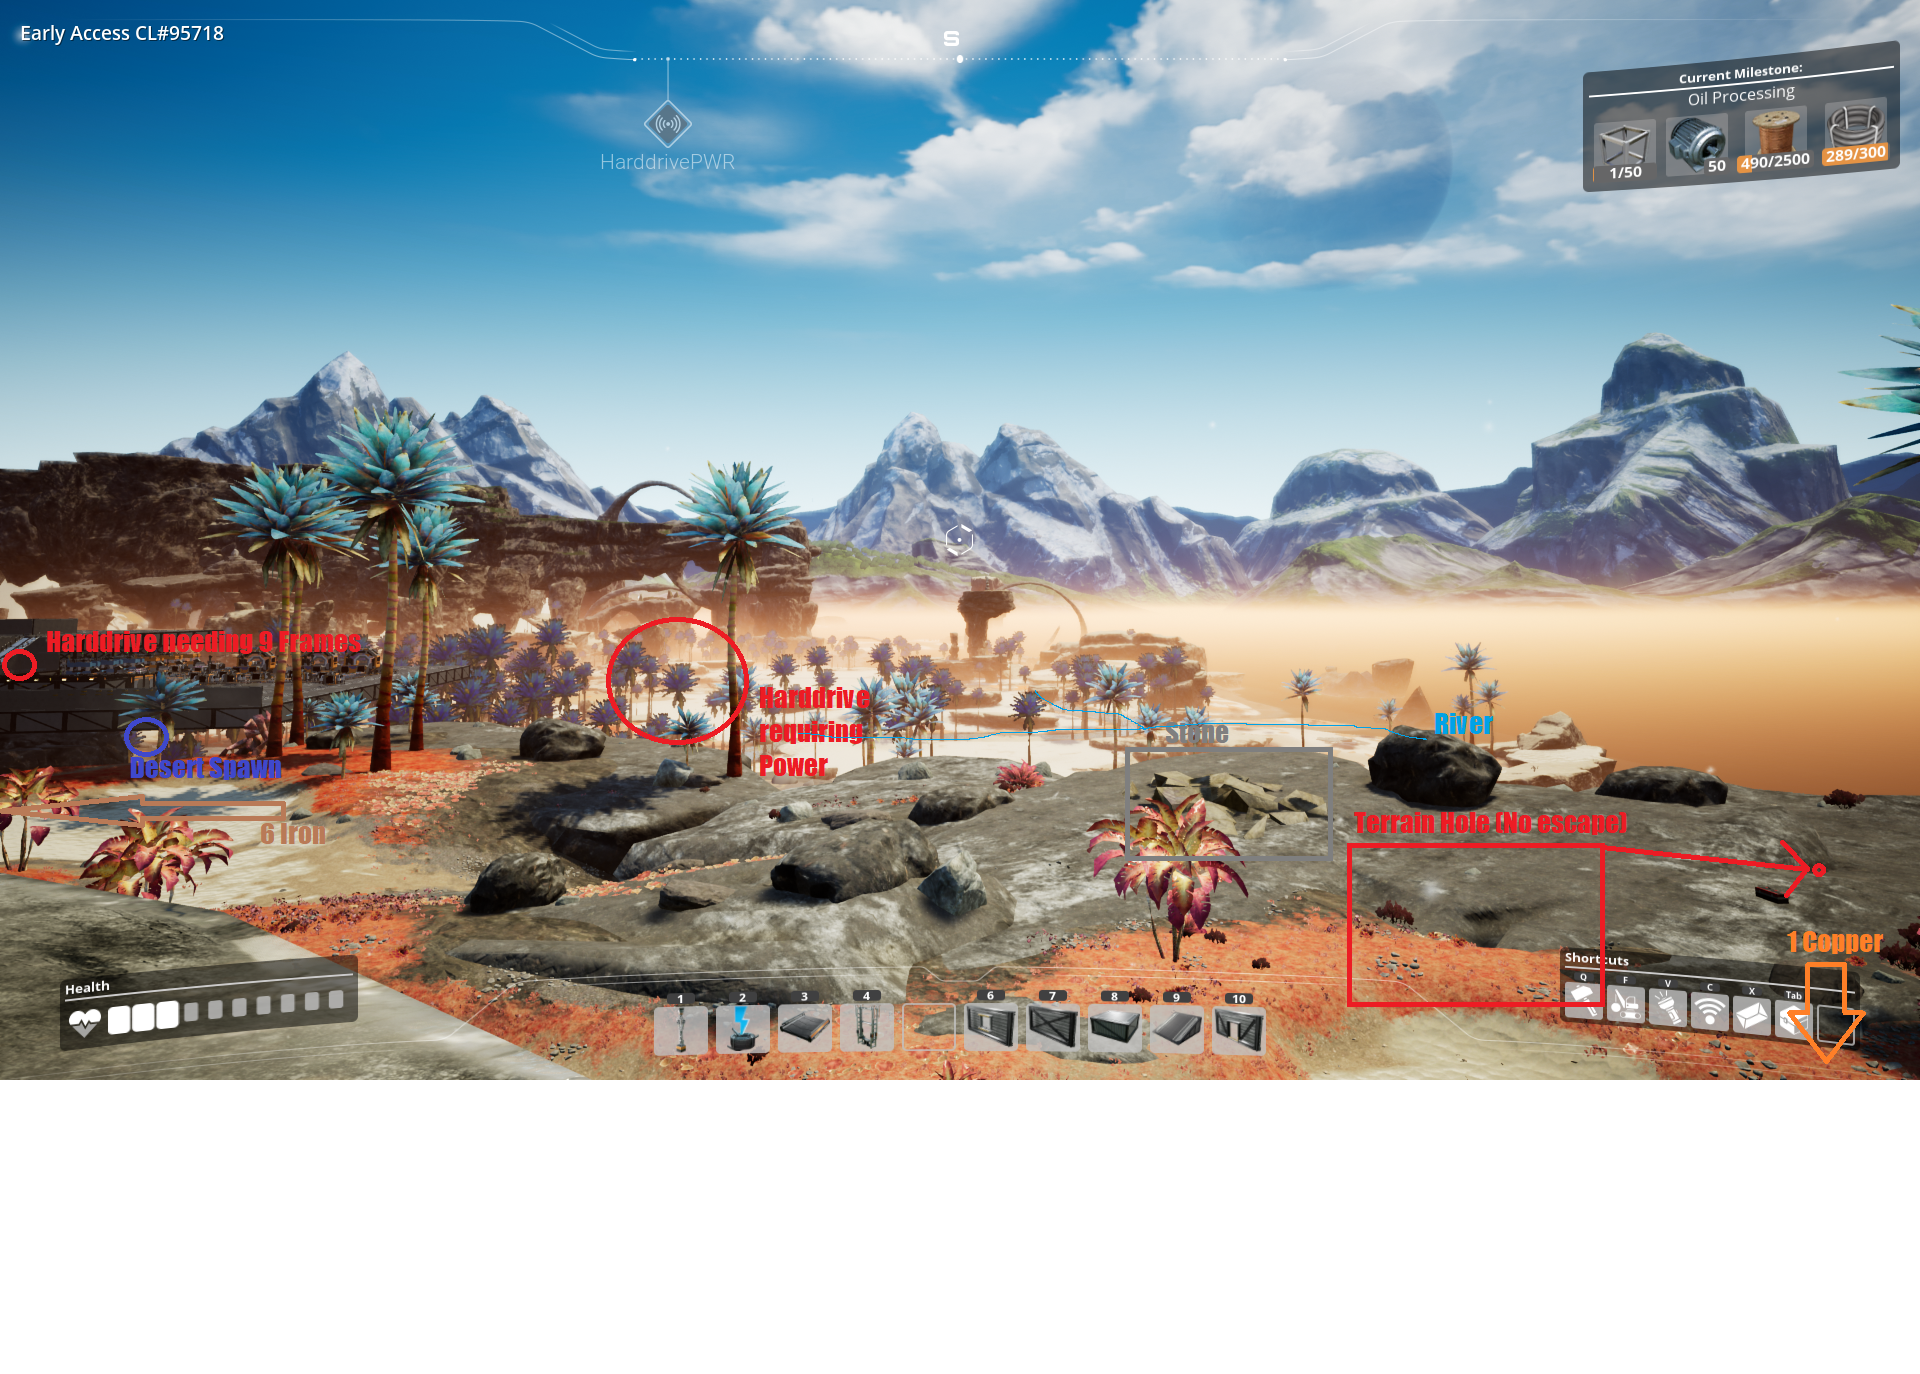 Image shows a desert hole and some landmarks